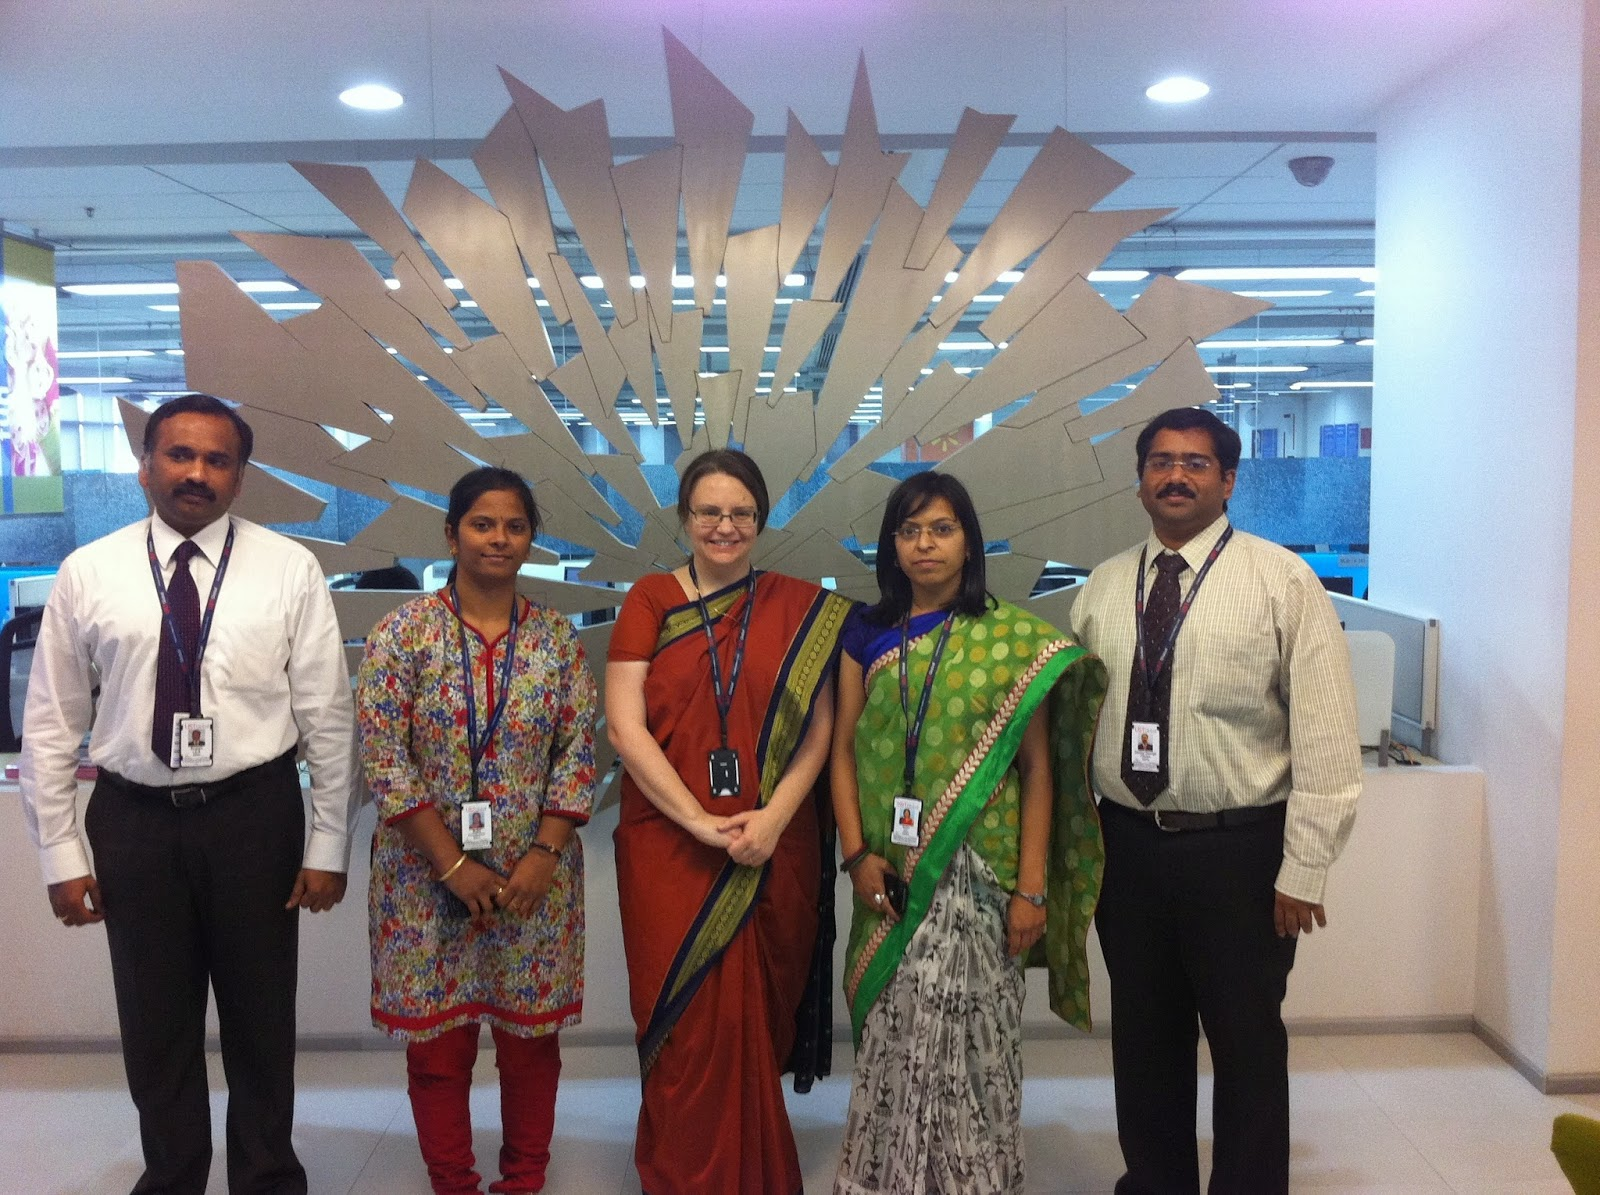 UST Global Bangalore